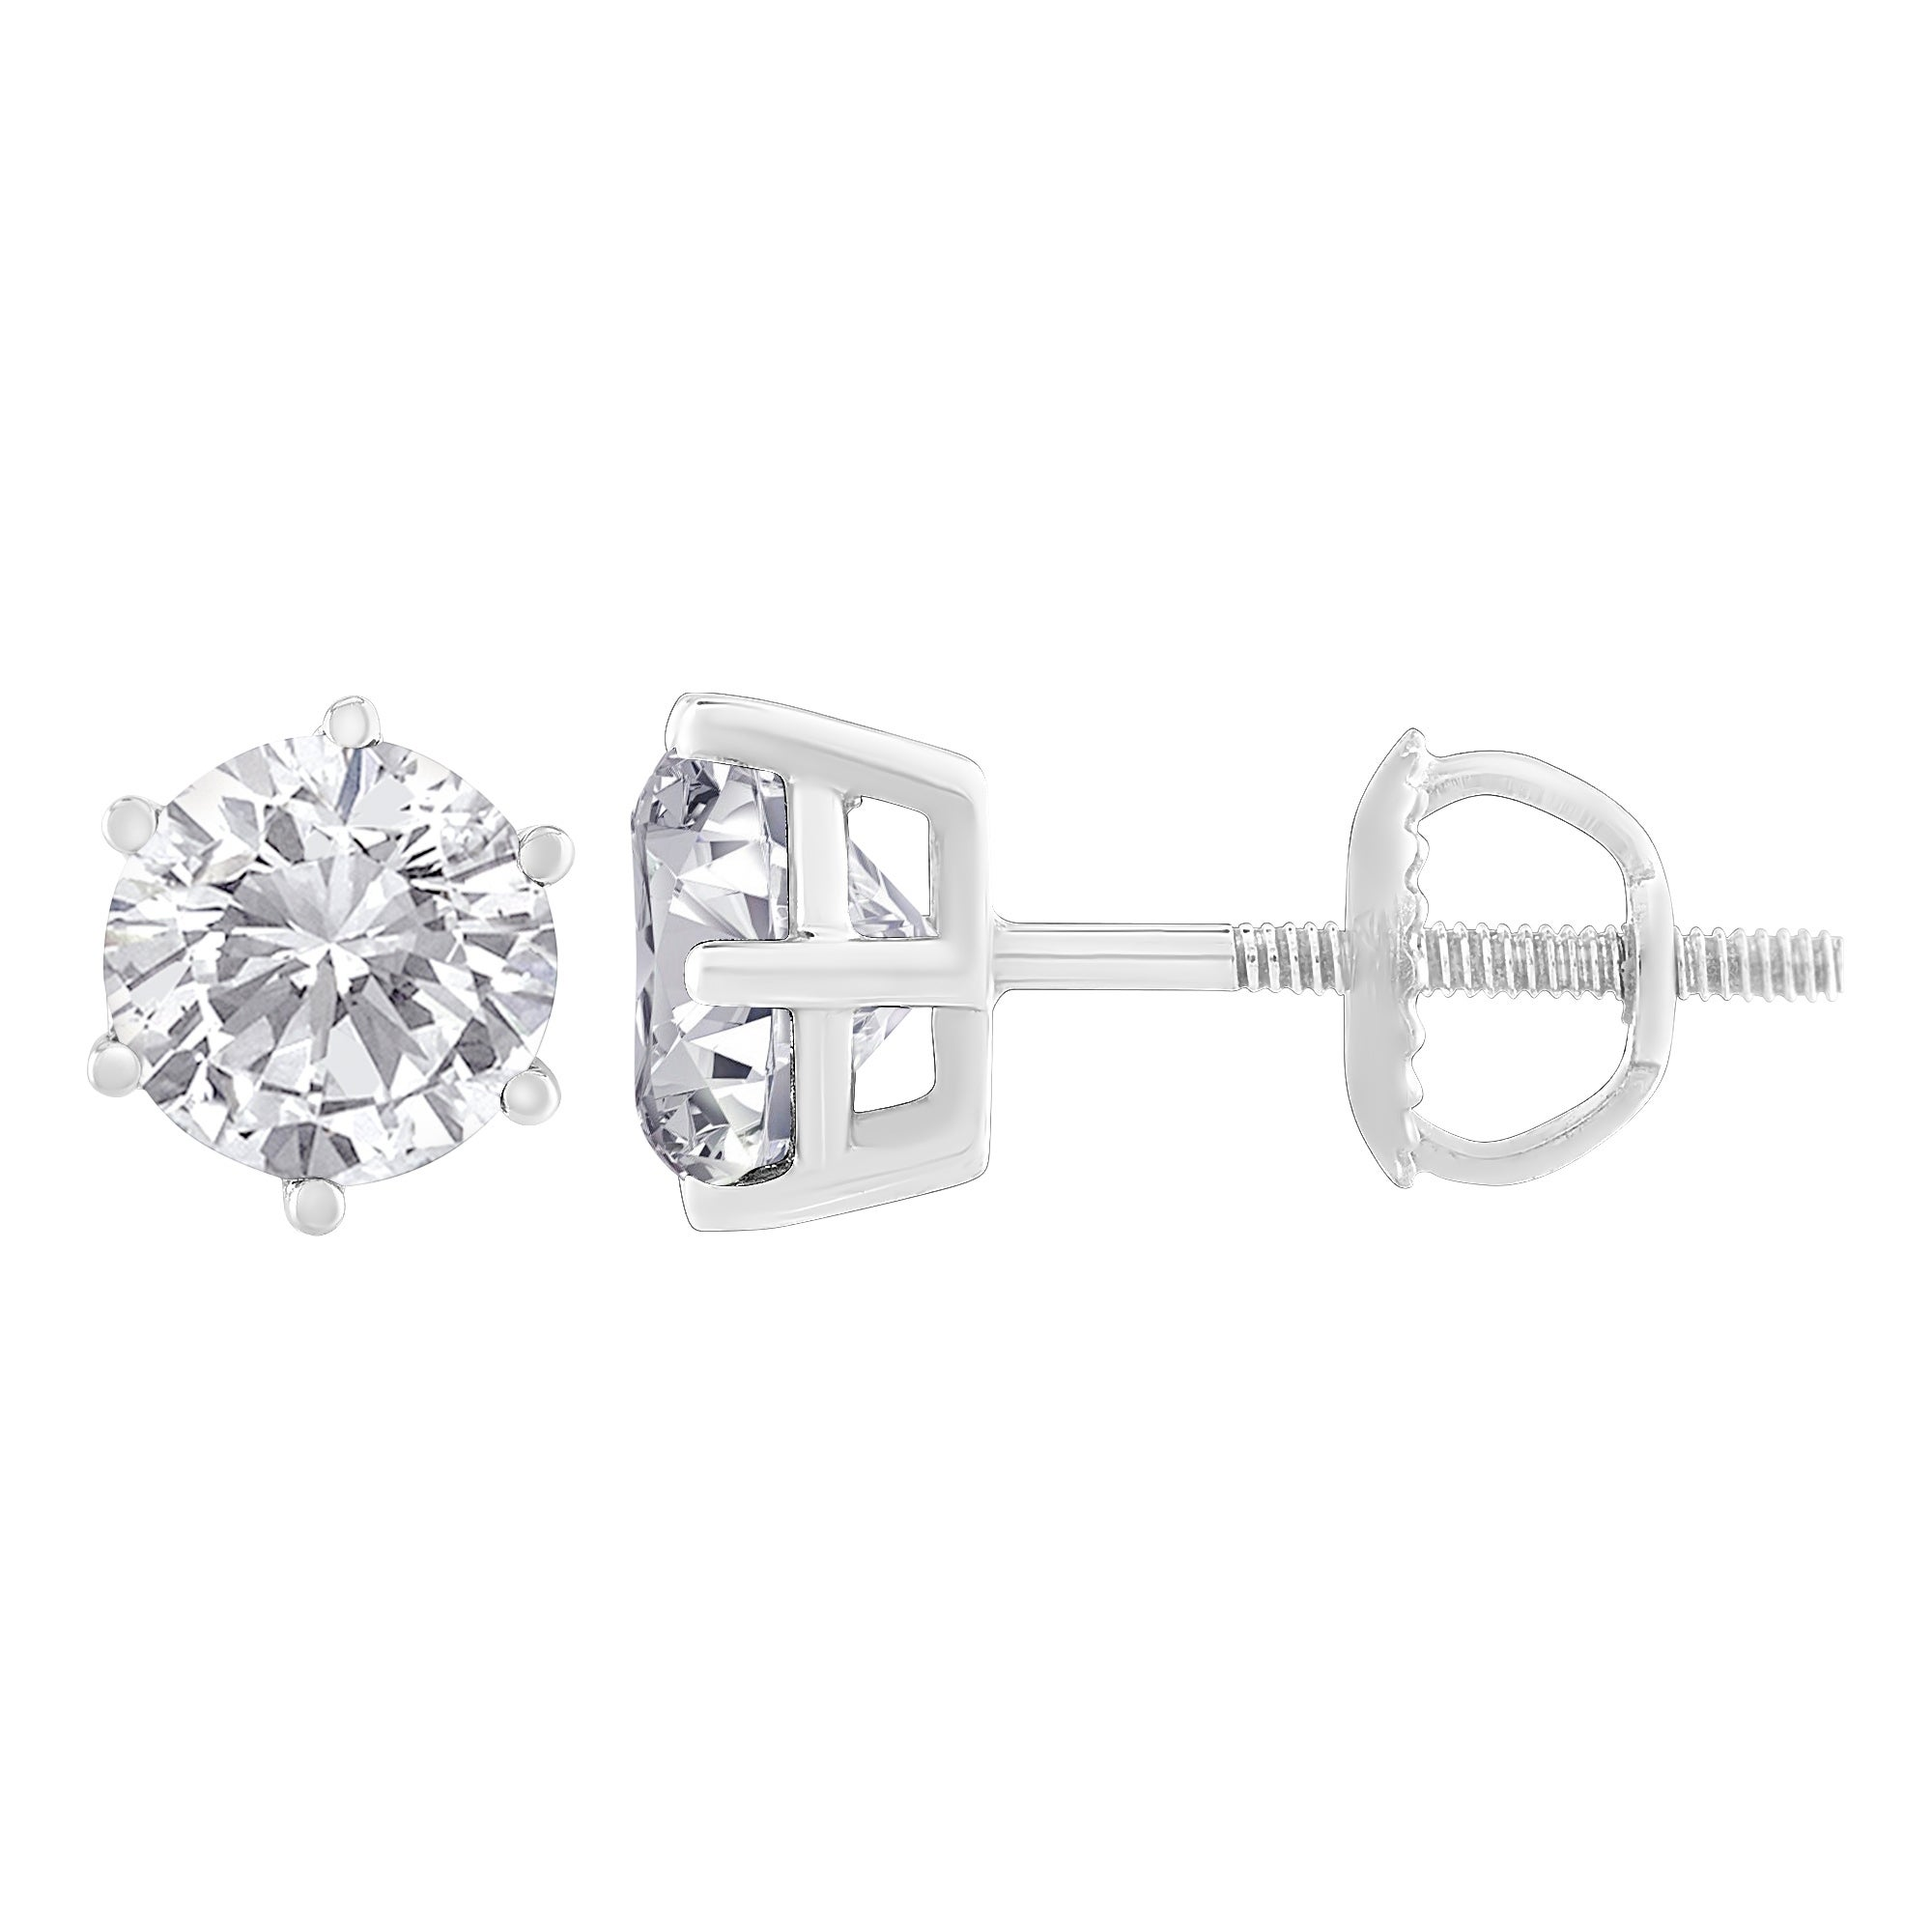 c products w ko stud earrings diamond anita